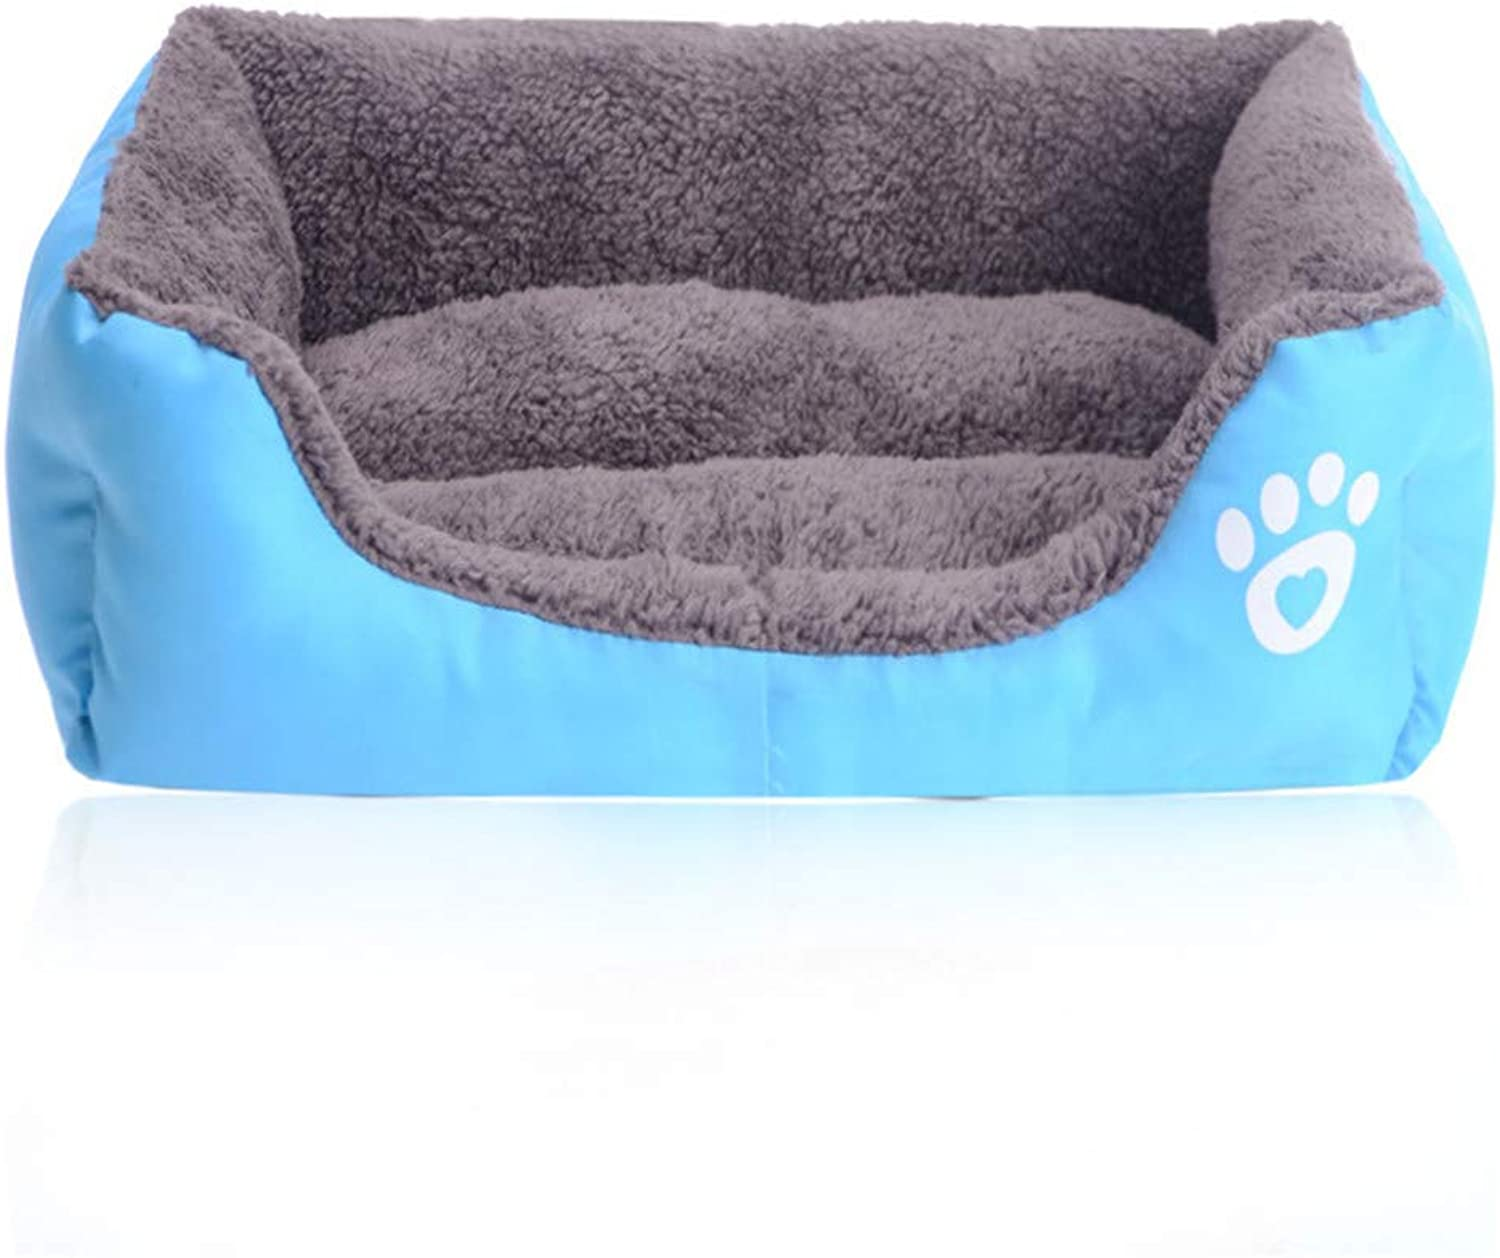 10 colors Large Dog Bed Padded Soft Pet Nest House Warm Indoor Dogs Sleeping Kennel Cushion For Cat Puppy bluee 80x65x17cm